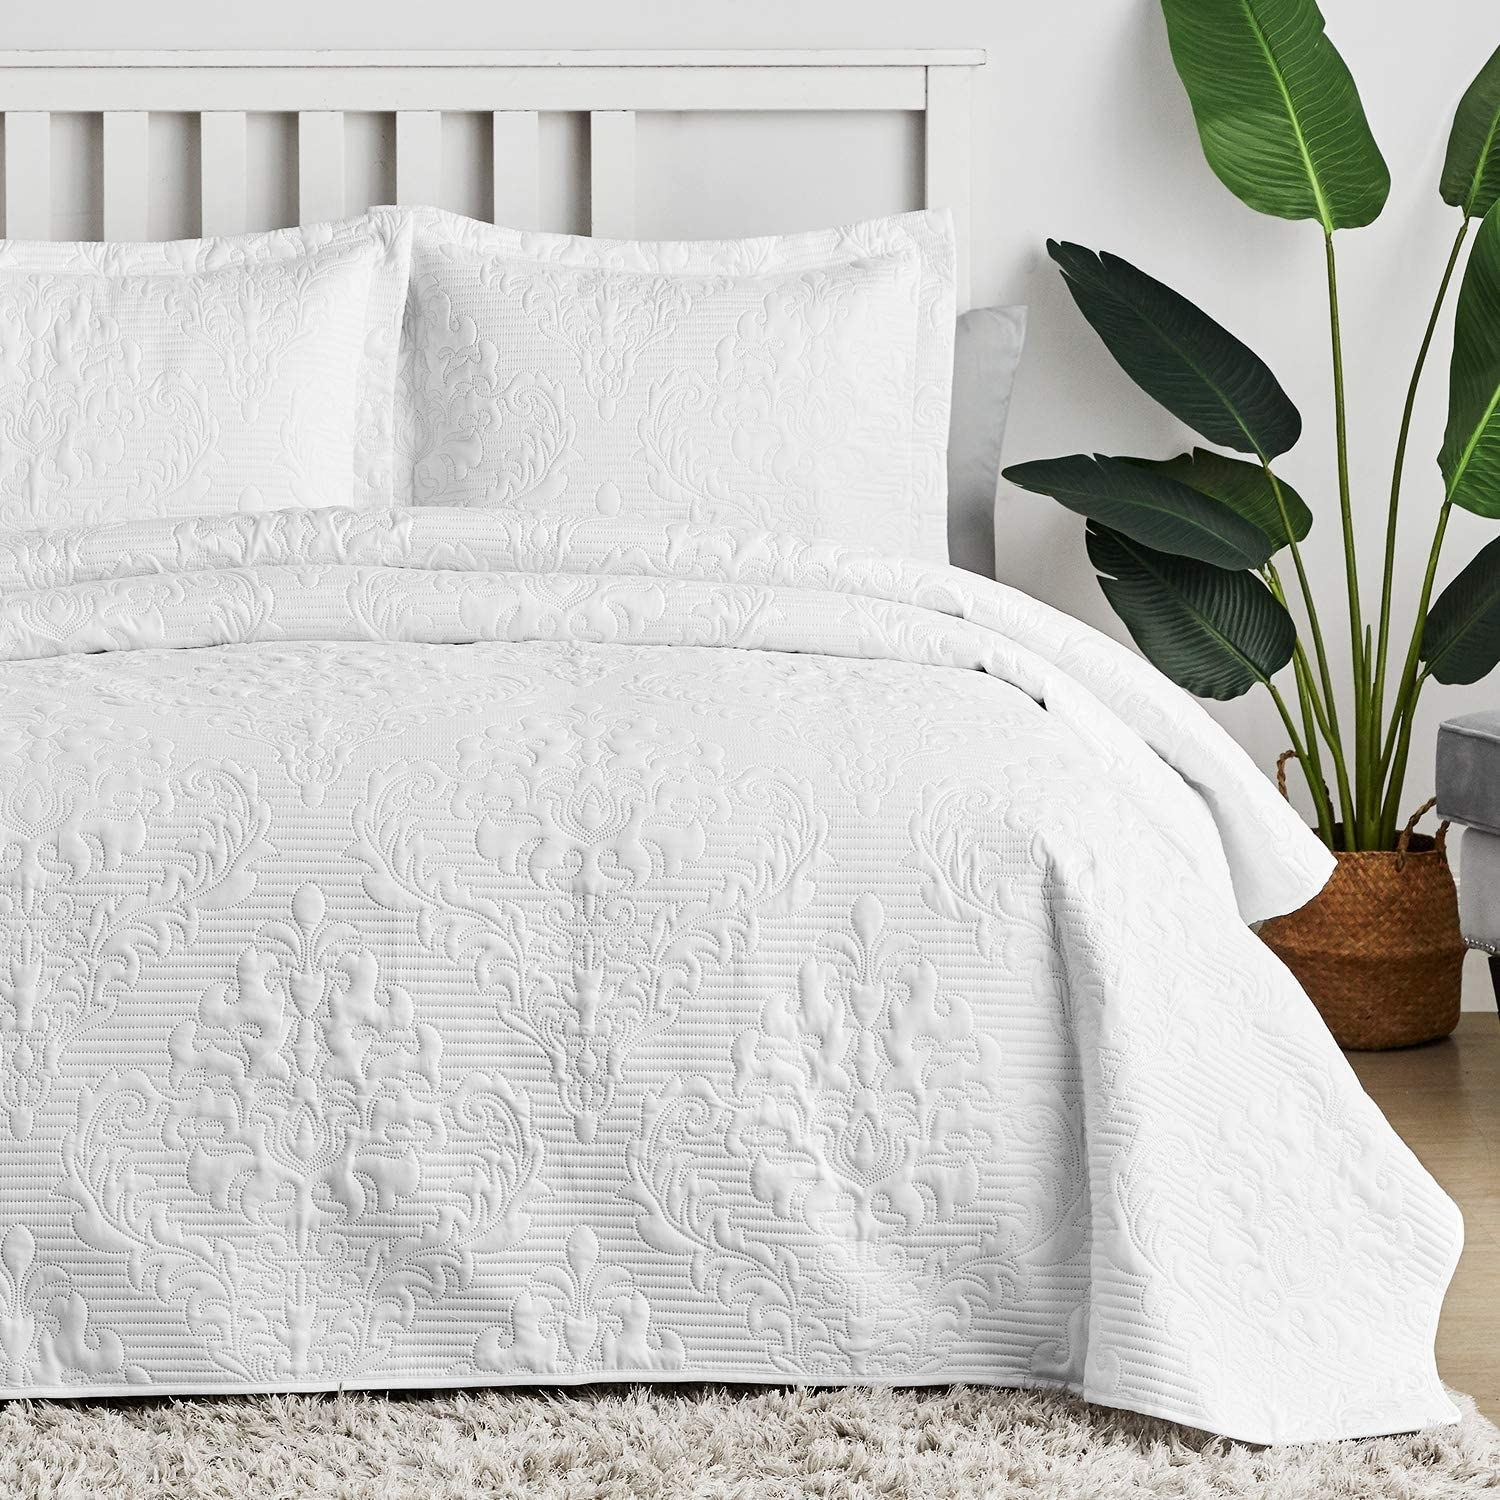 embroidered pattern in white bedding